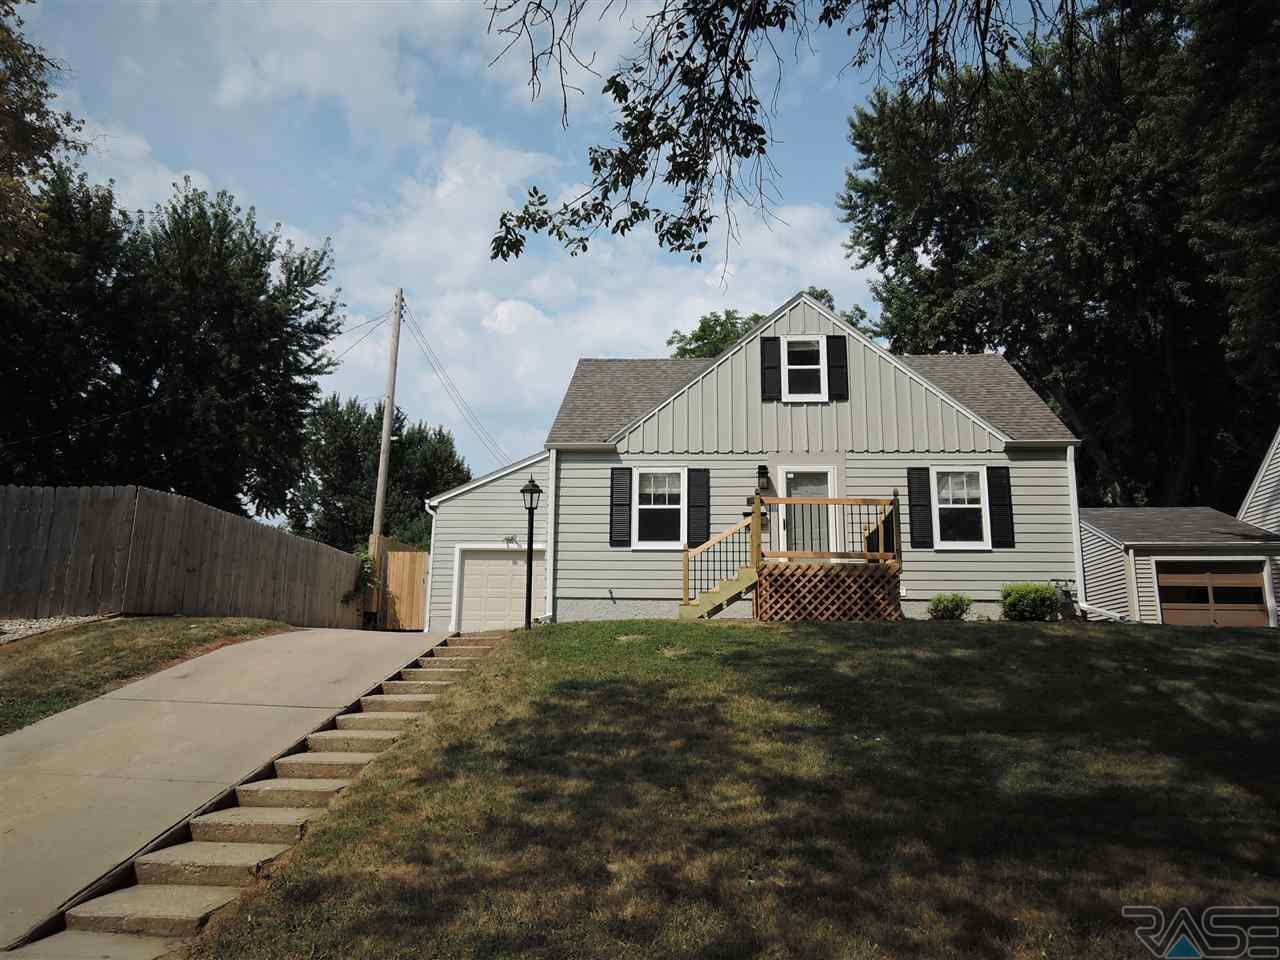 913 S Glendale Ave, Sioux Falls, SD 57104